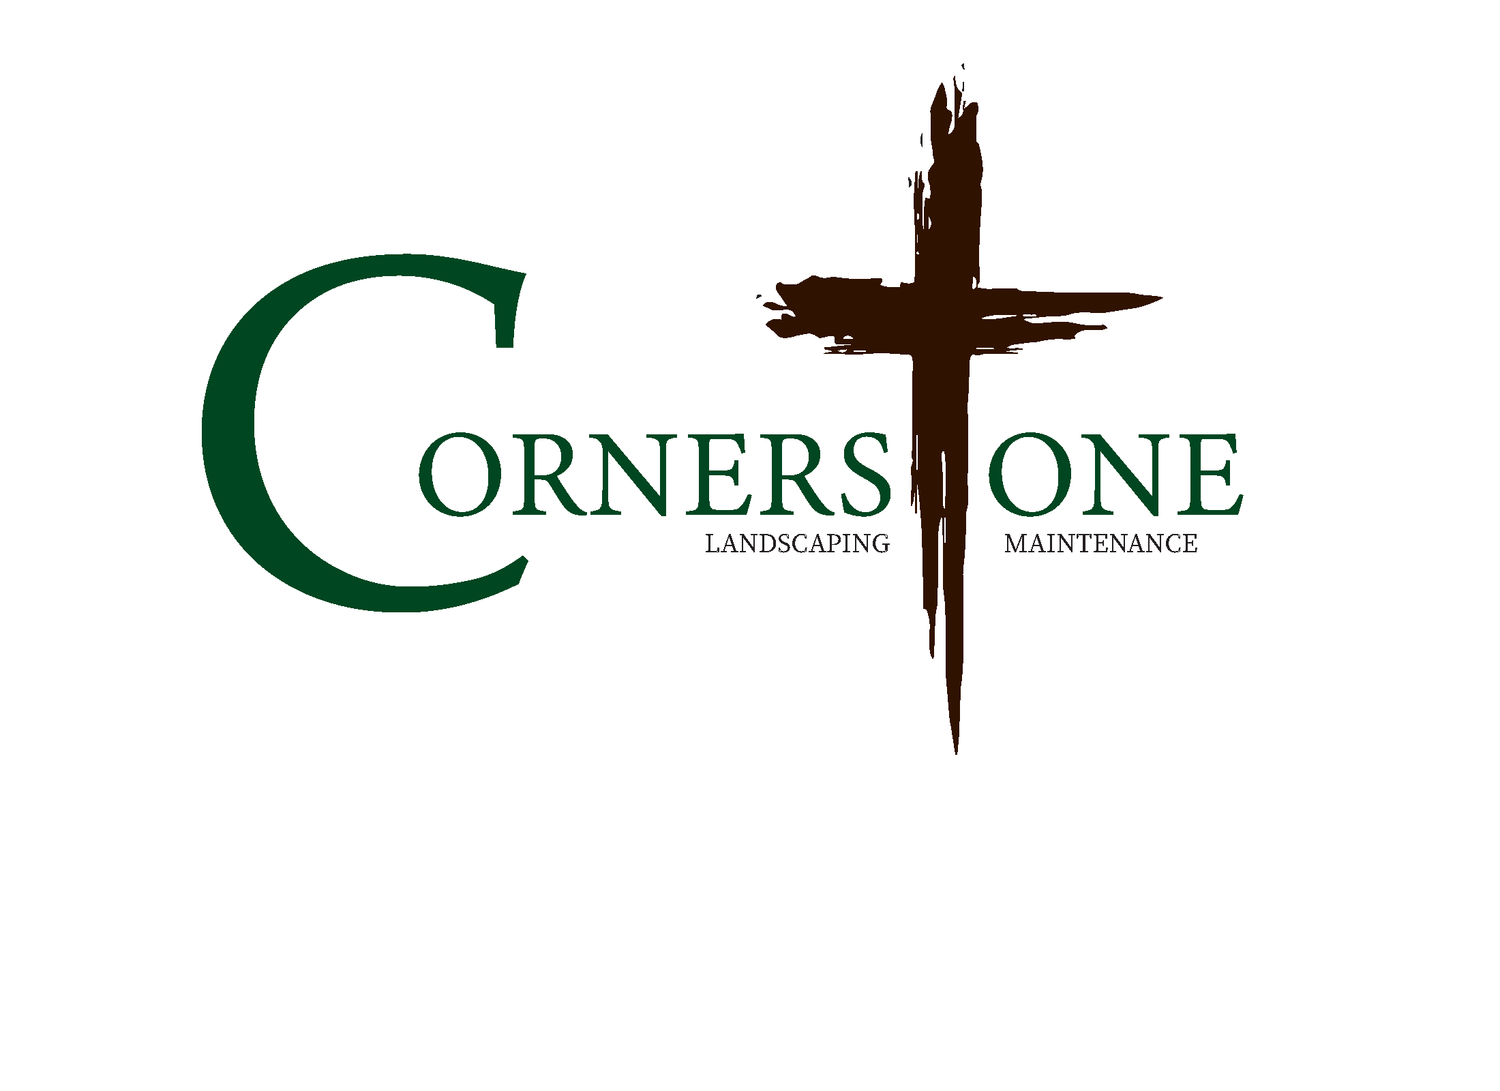 Cornerstone Landscape & Maintenance